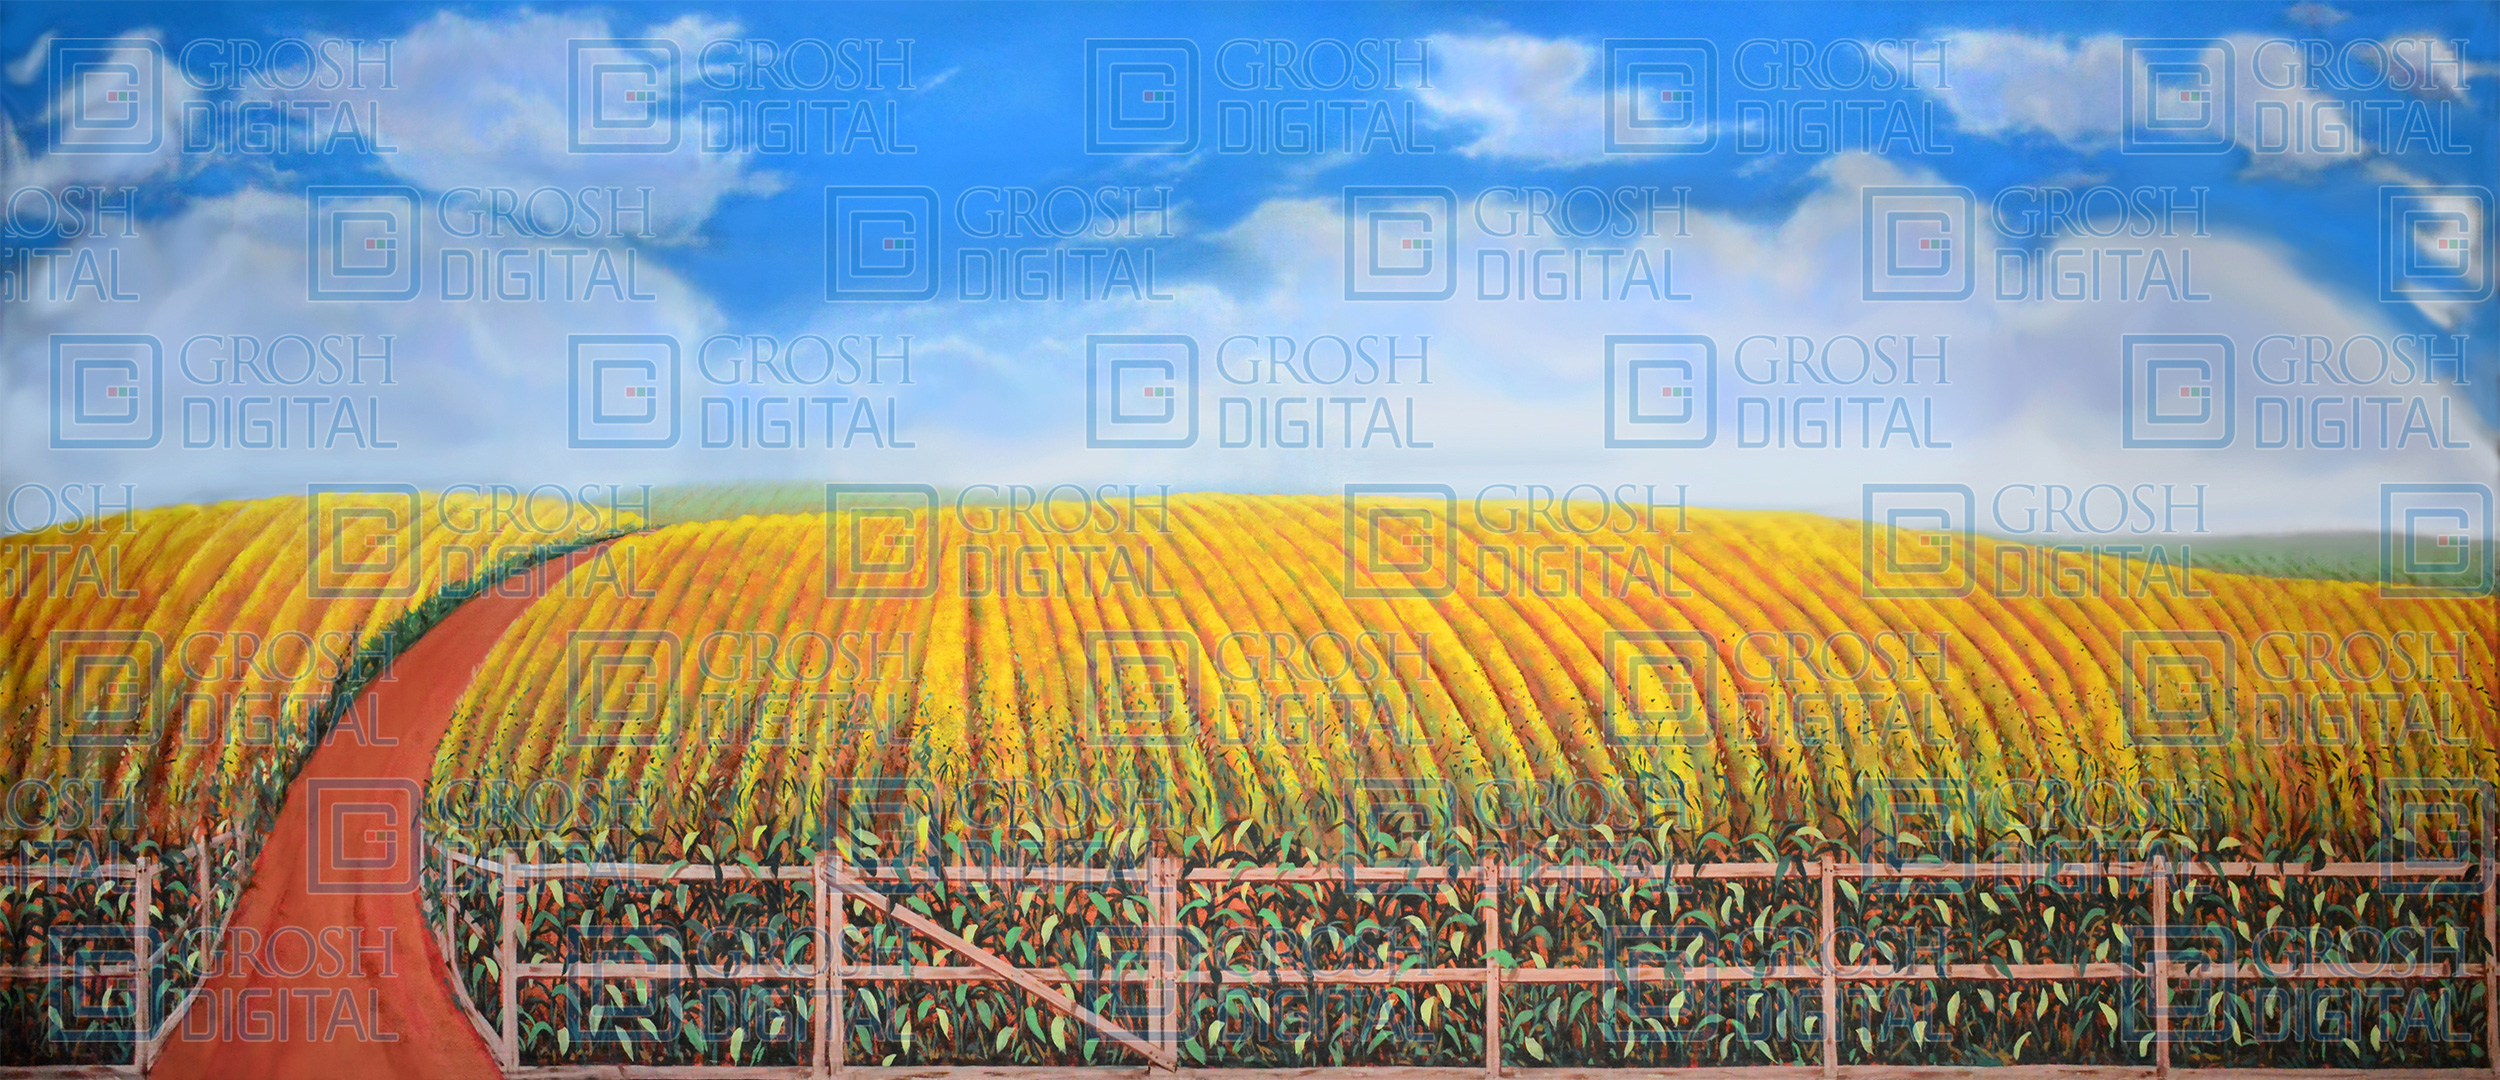 Cornfield Projected Backdrop for Landscapes, Oklahoma, Seven Brides for Seven Brothers, Wizard of Oz